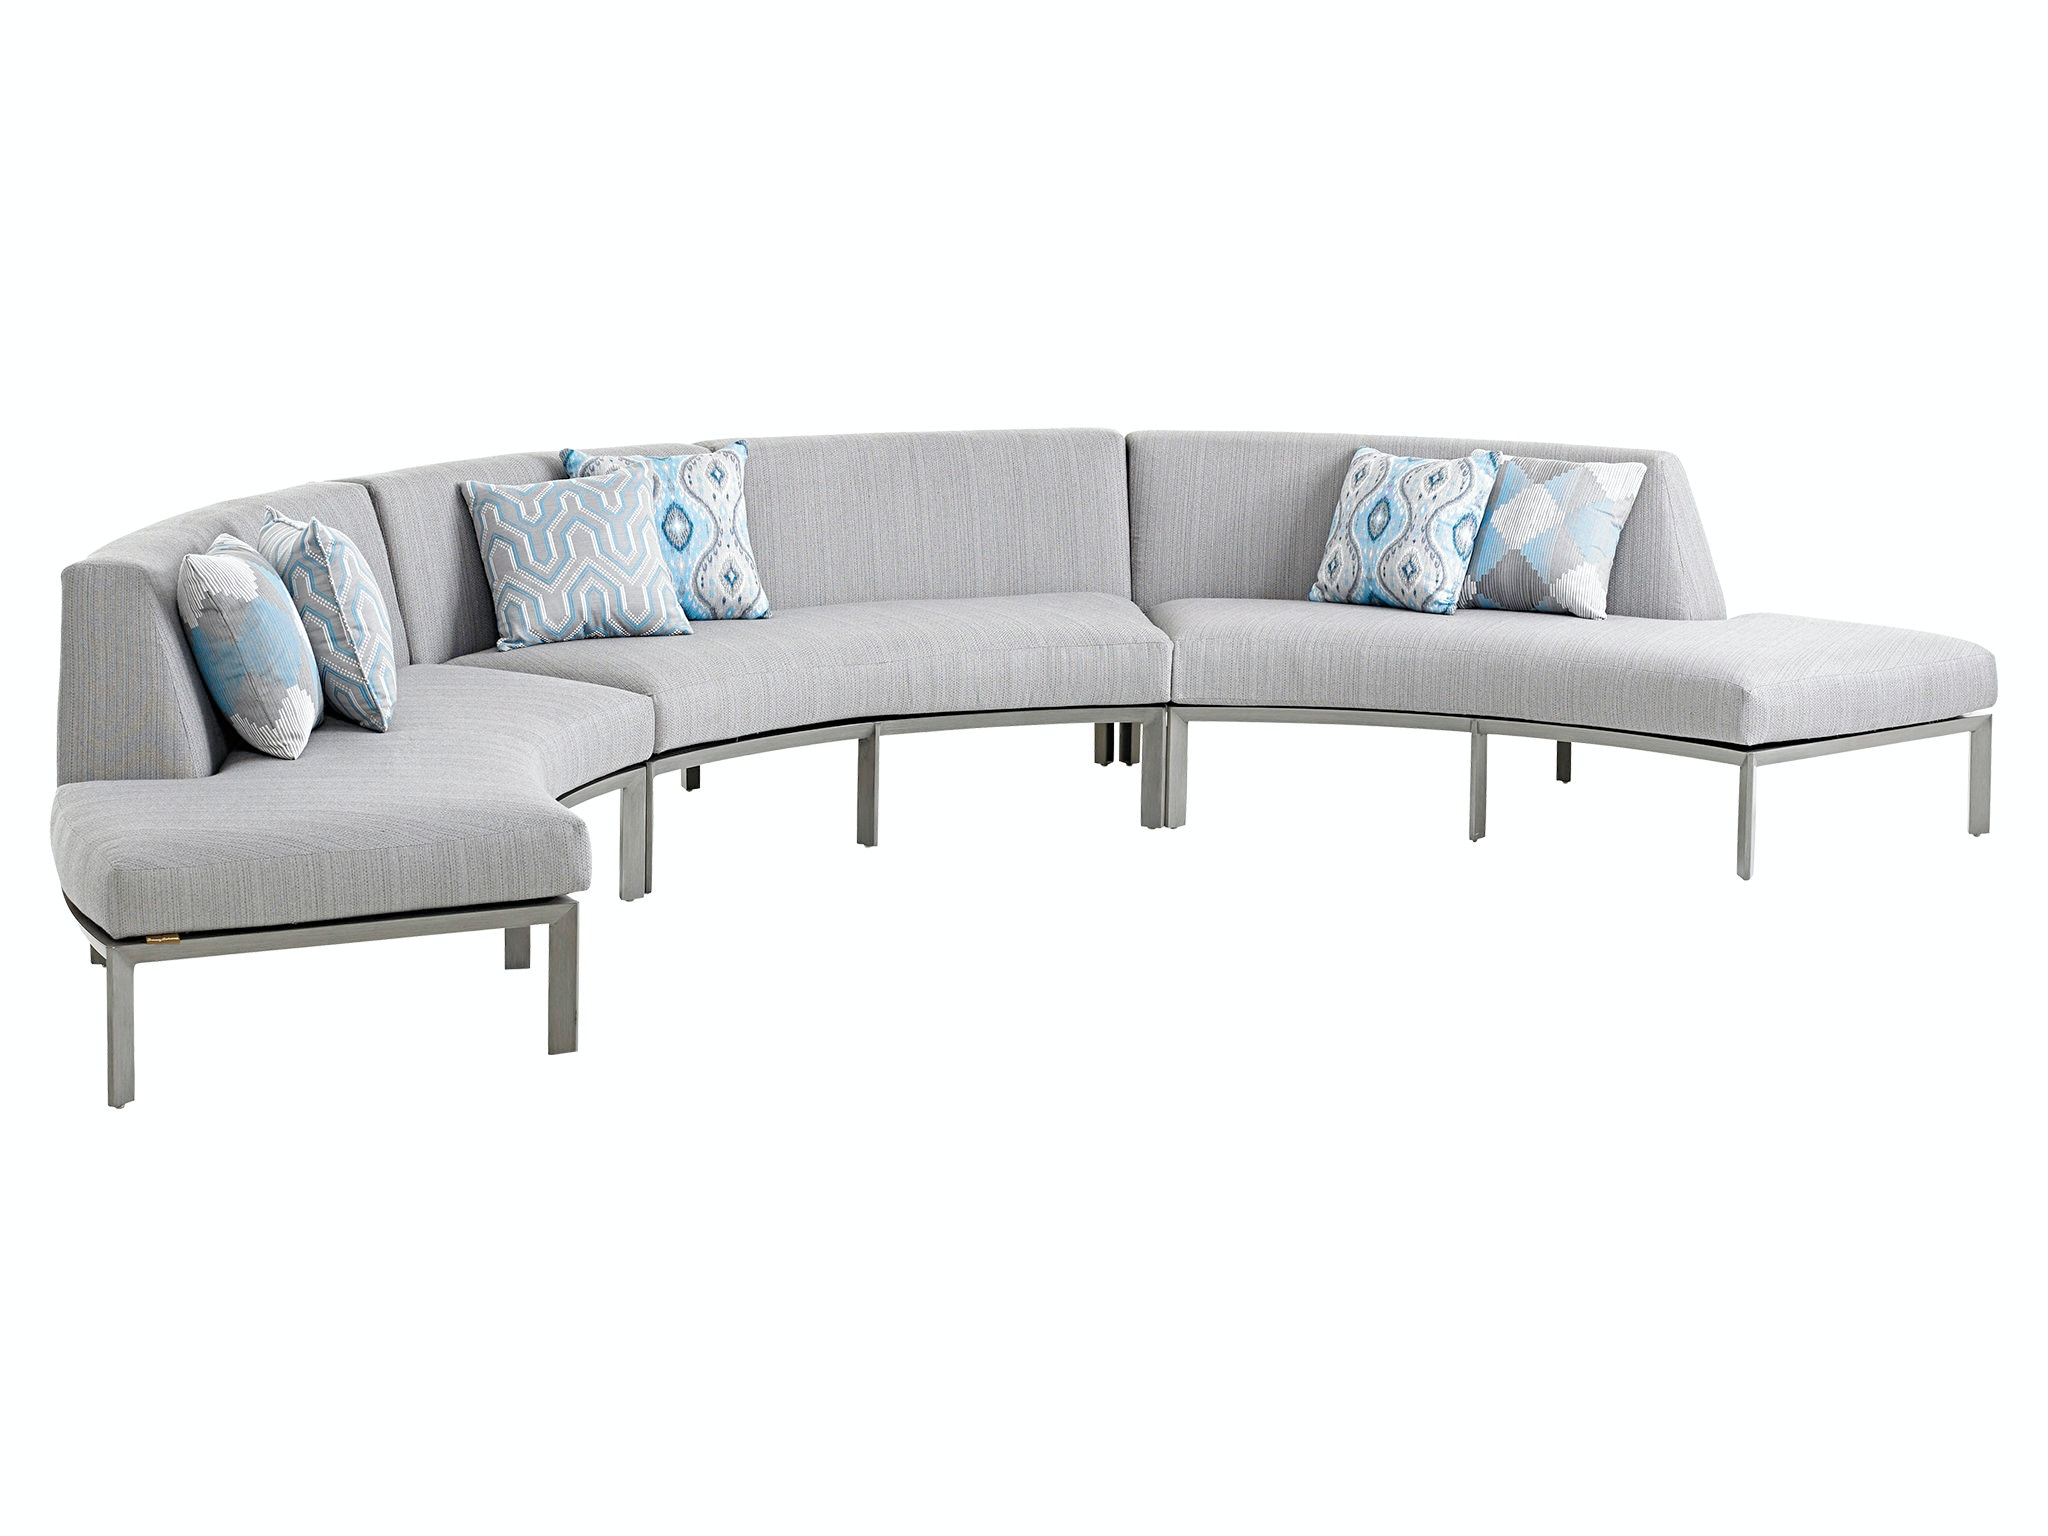 Tommy Bahama Outdoor Living Left Side Facing Curved Sectional Love Seat  3800 52L